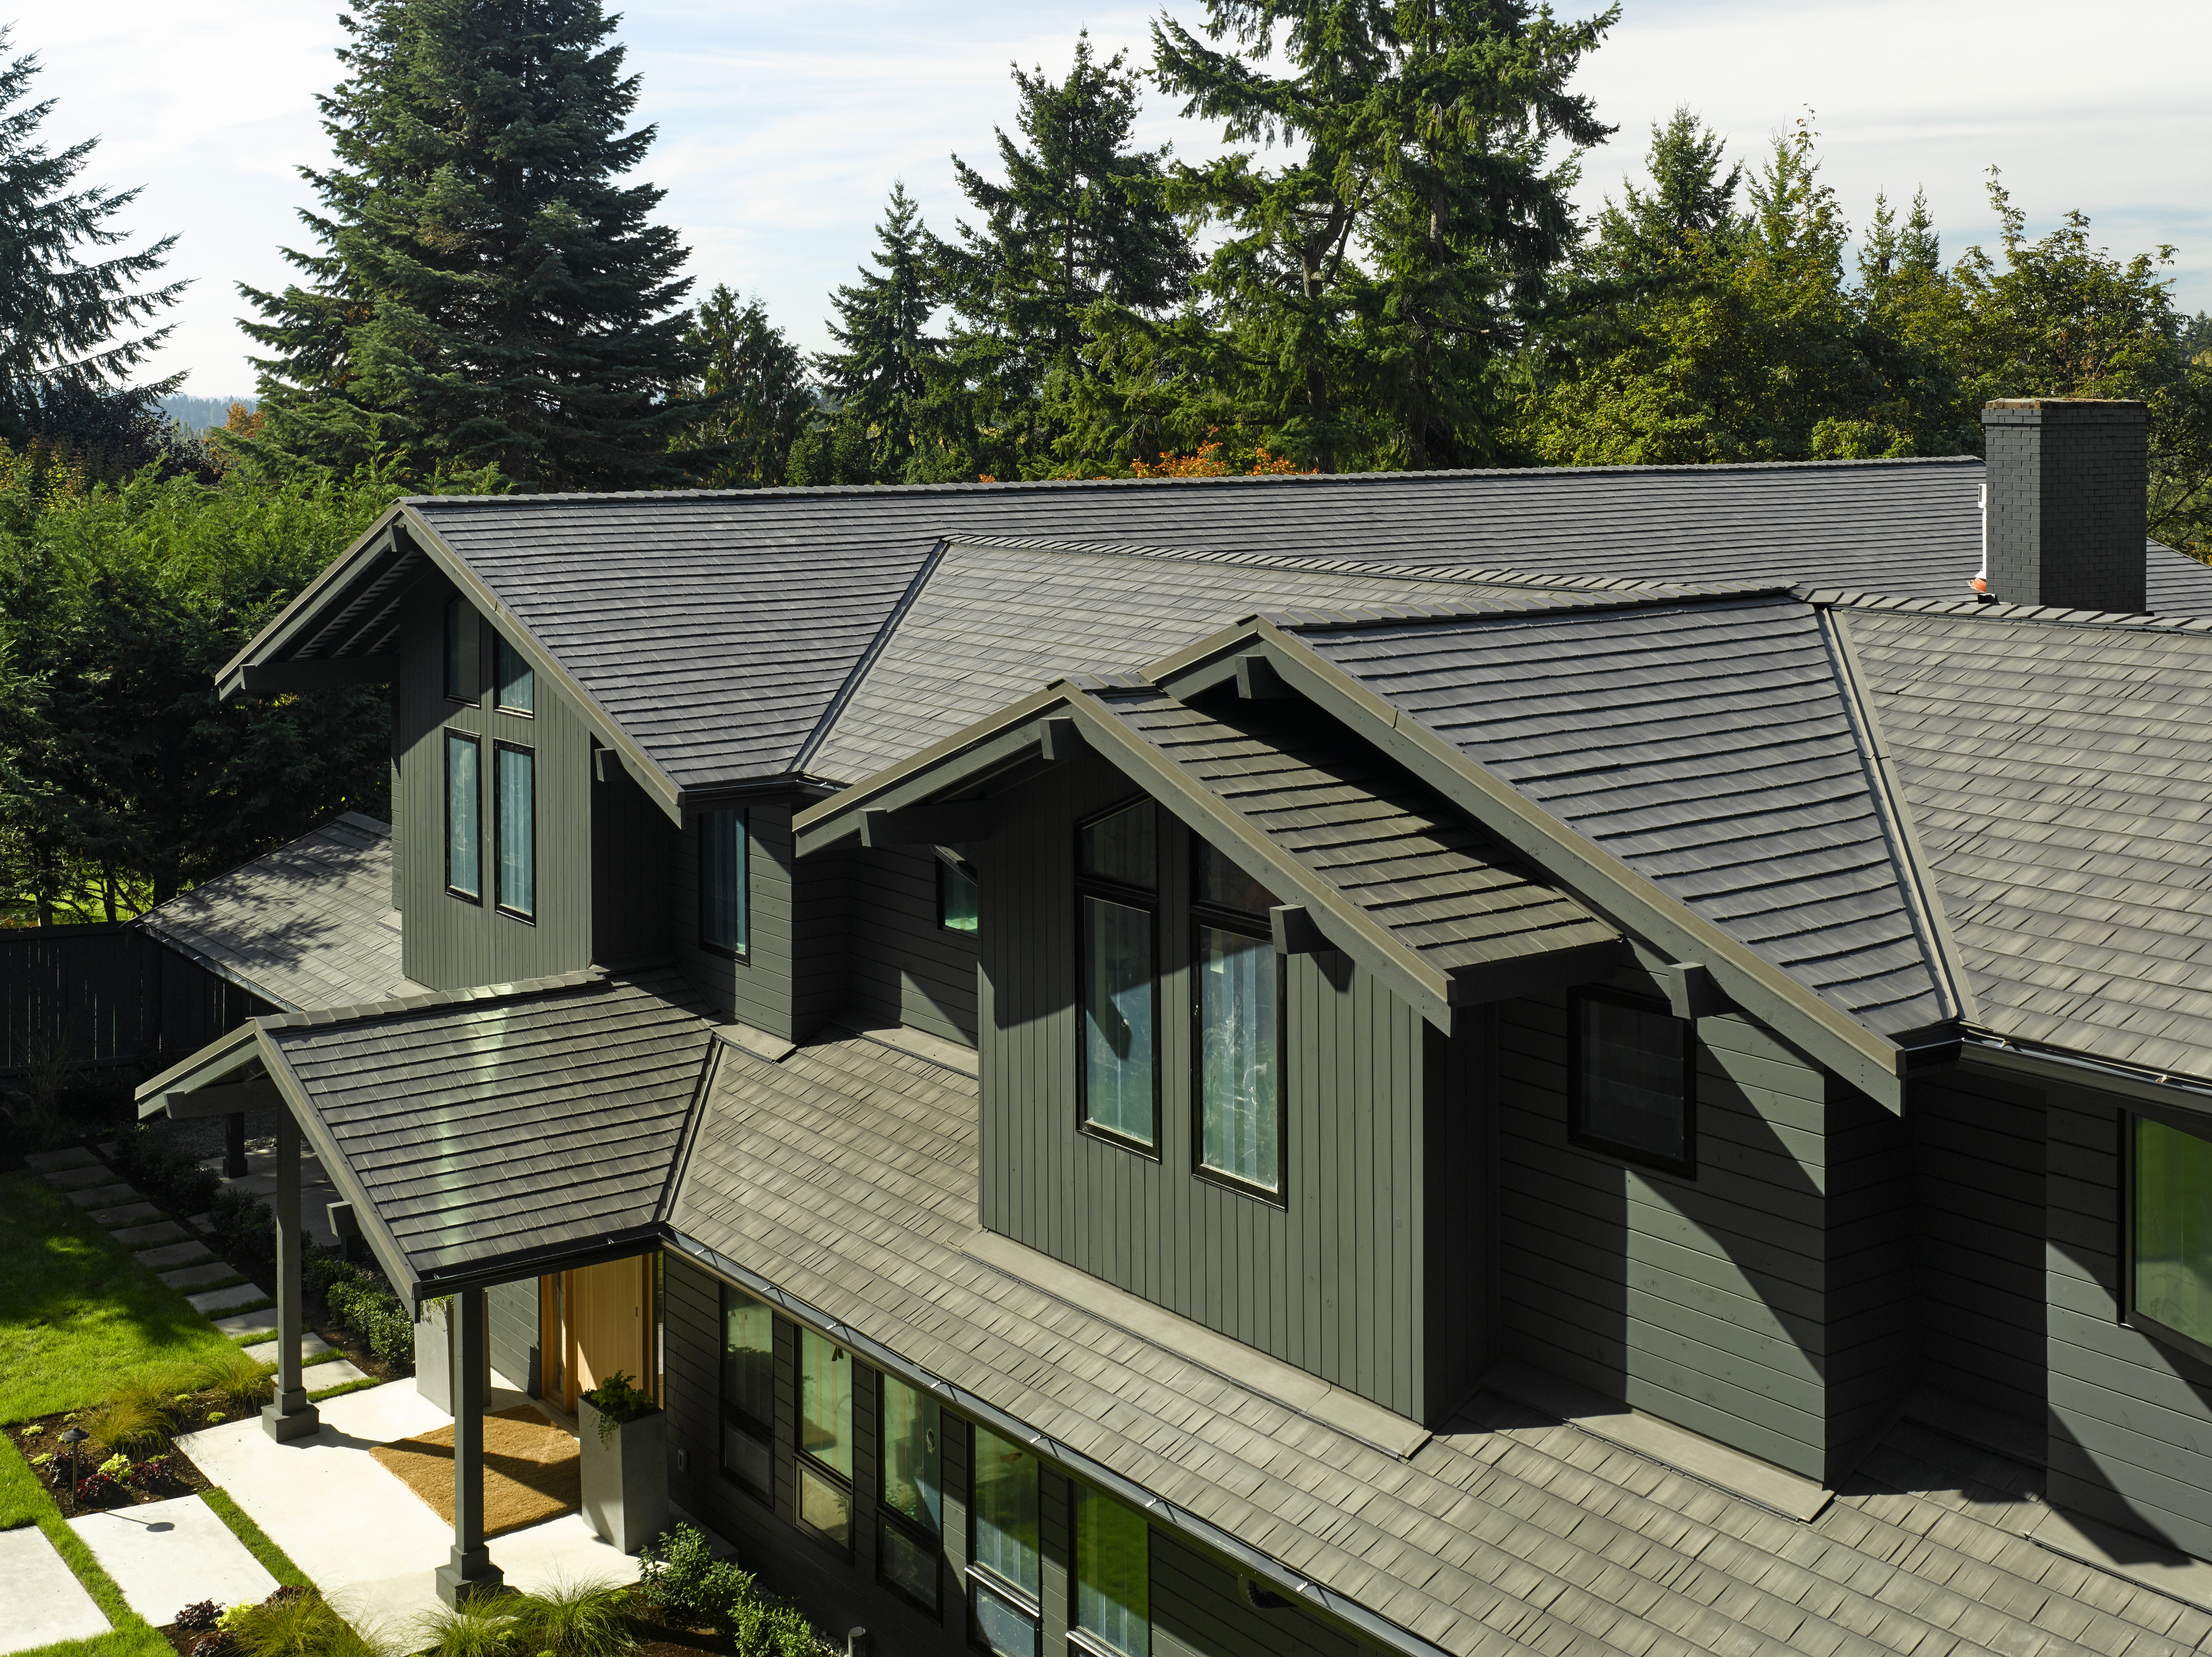 Metal Roofing Pros Cons 5 Advantages 4 Disadvantages Certainteed